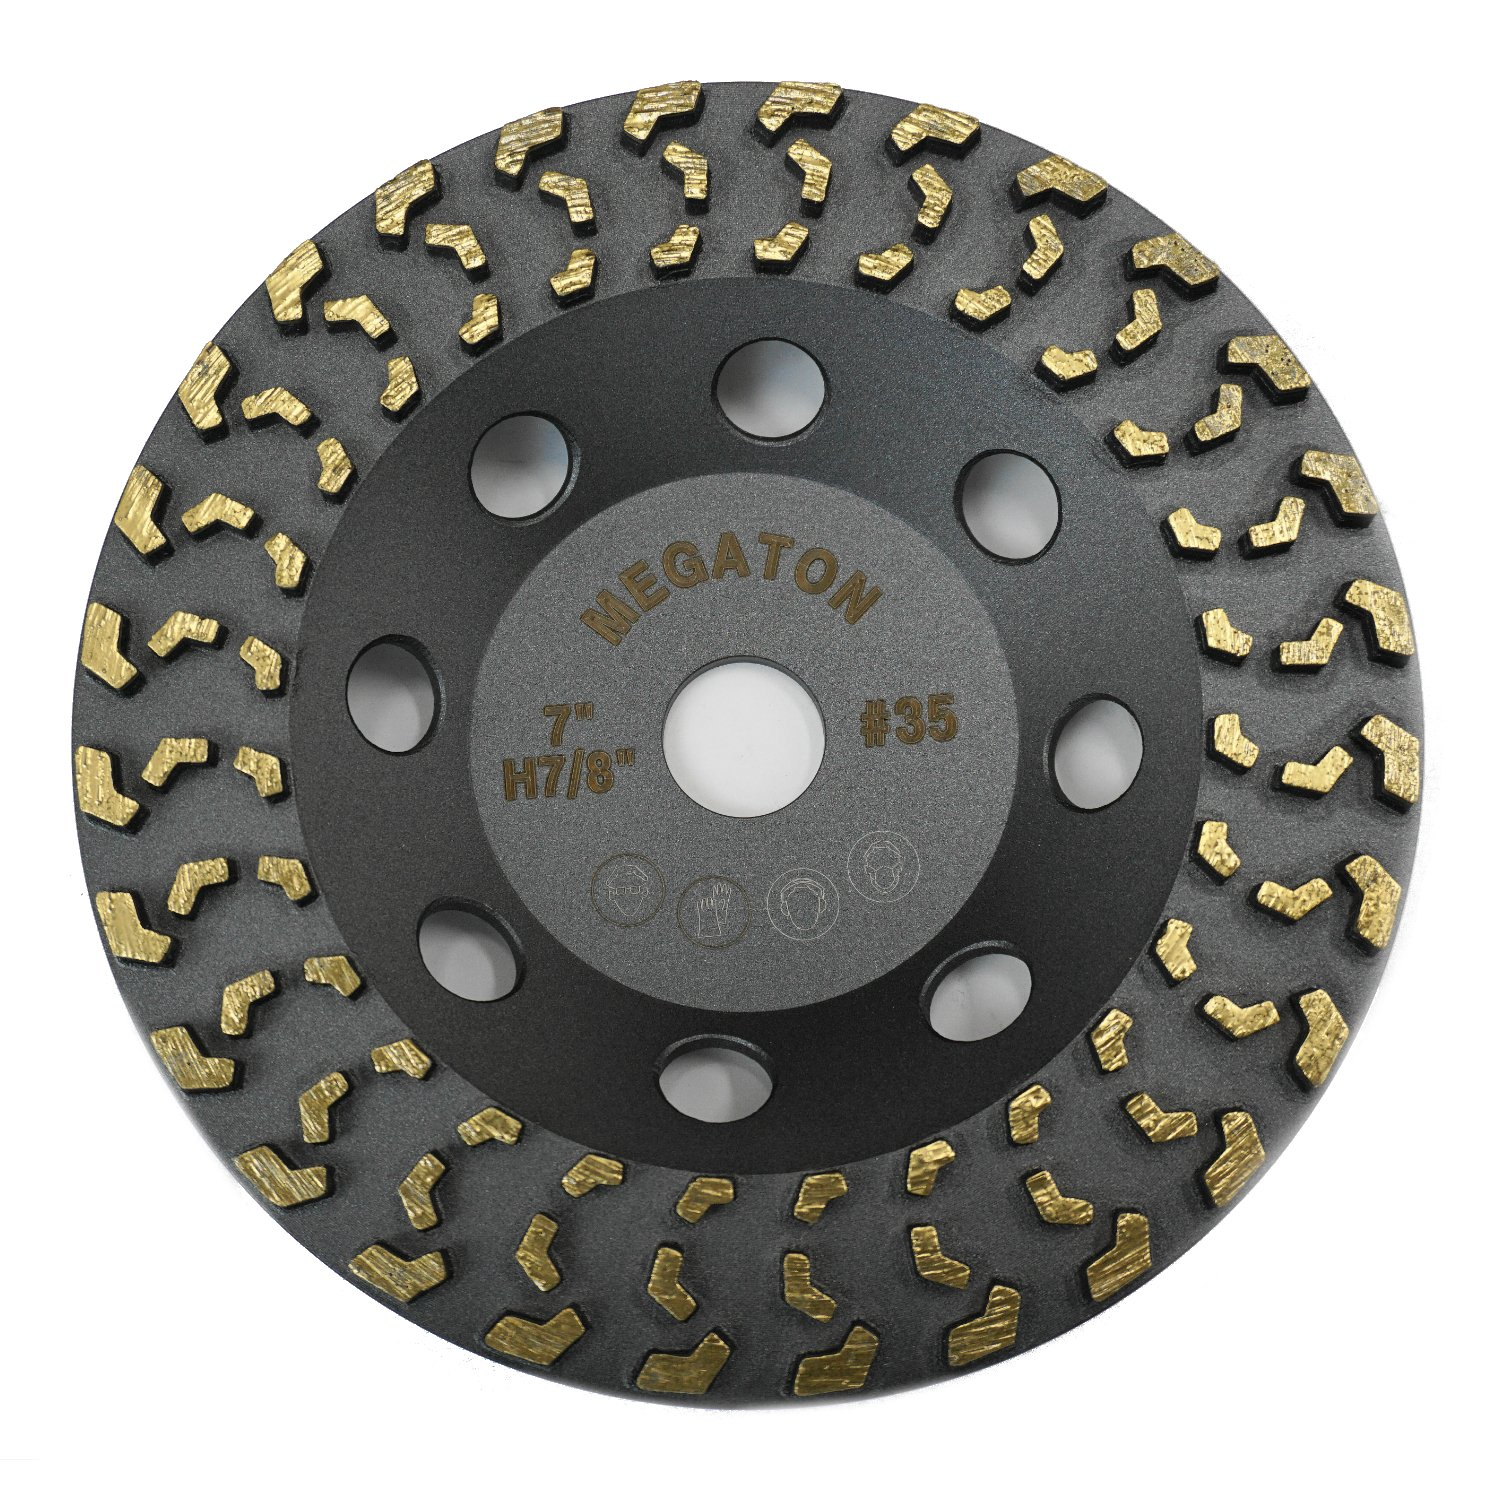 Megatron 7'' Diamond Cup Grinding Removing Disc Wheel for Any Concrete, Paint, Epoxy, Glue and Mastic with CDB Newest Technology (Megatron 7'')